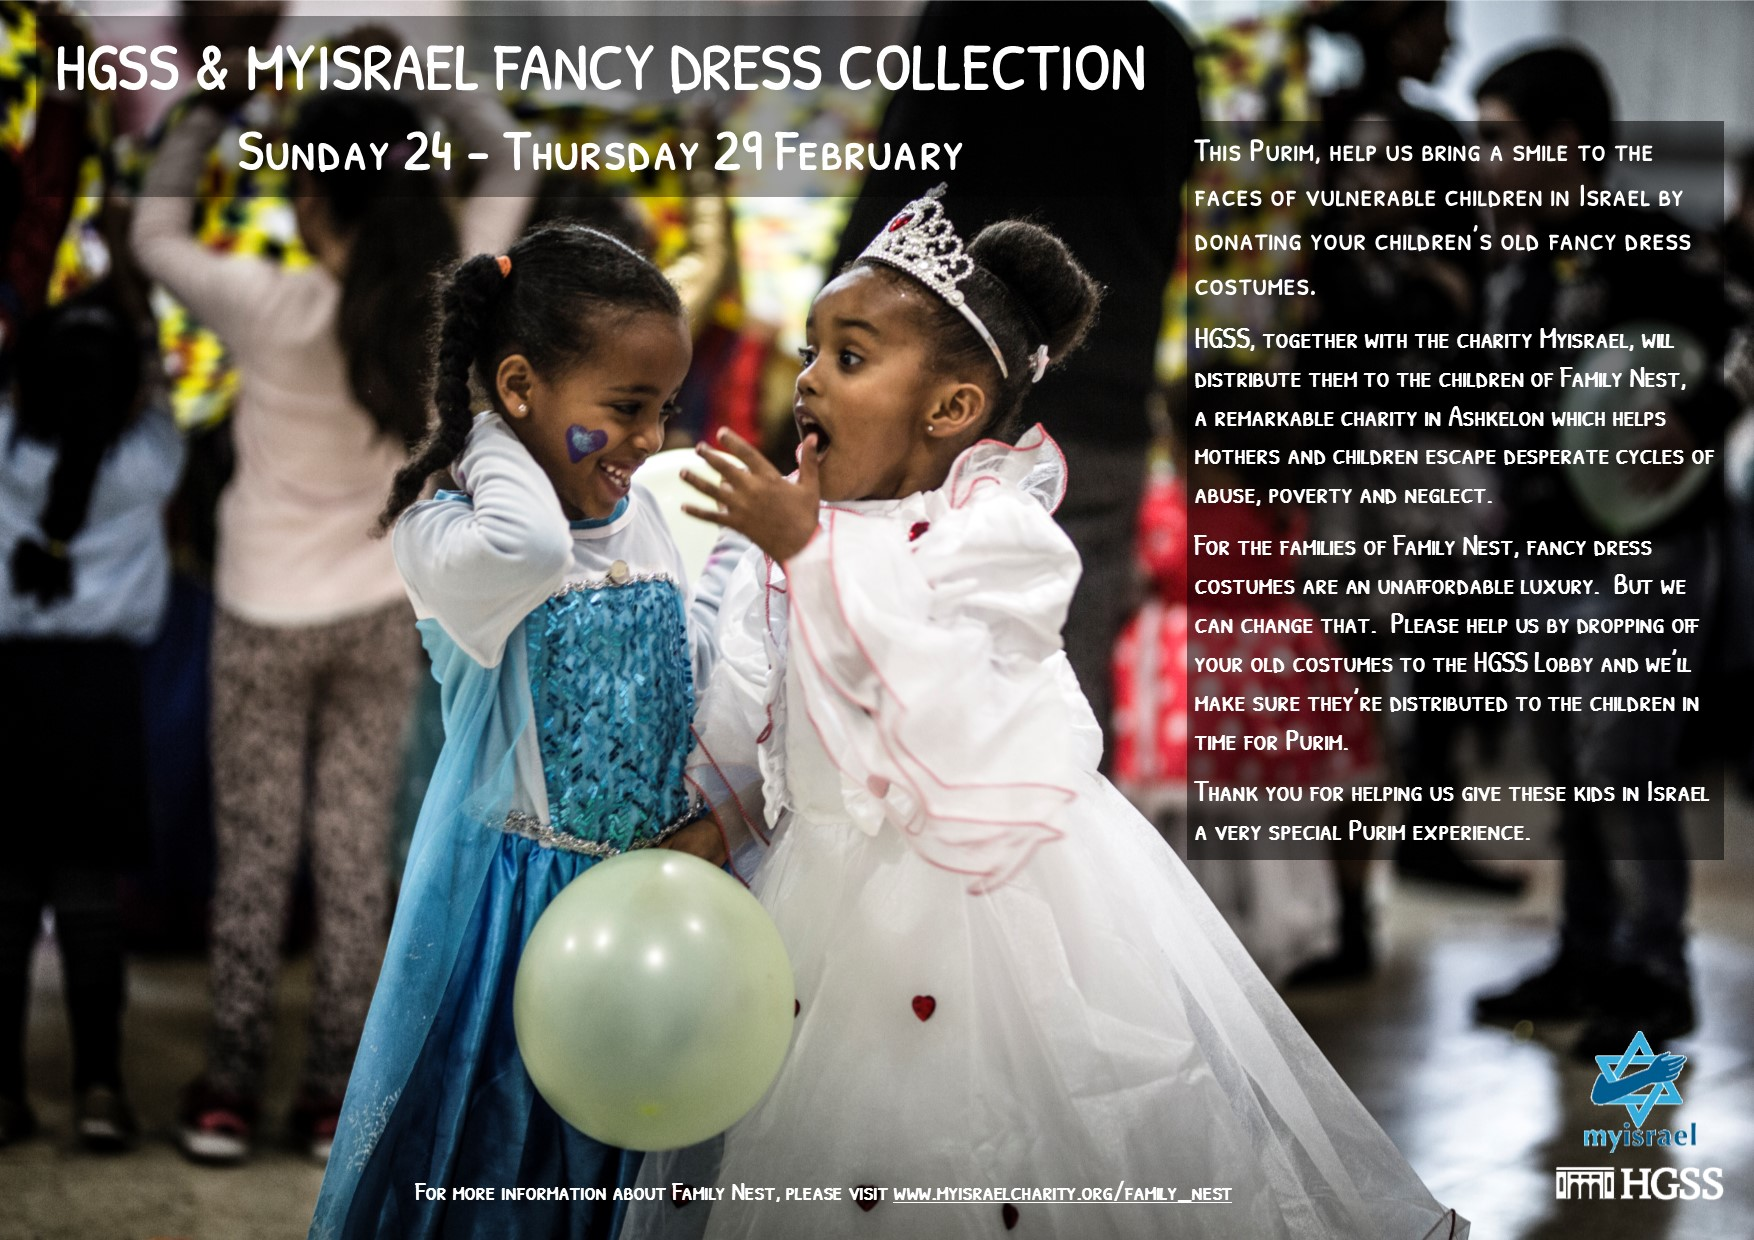 Purim Fancy Dress Collection @ Lobby, HGSS